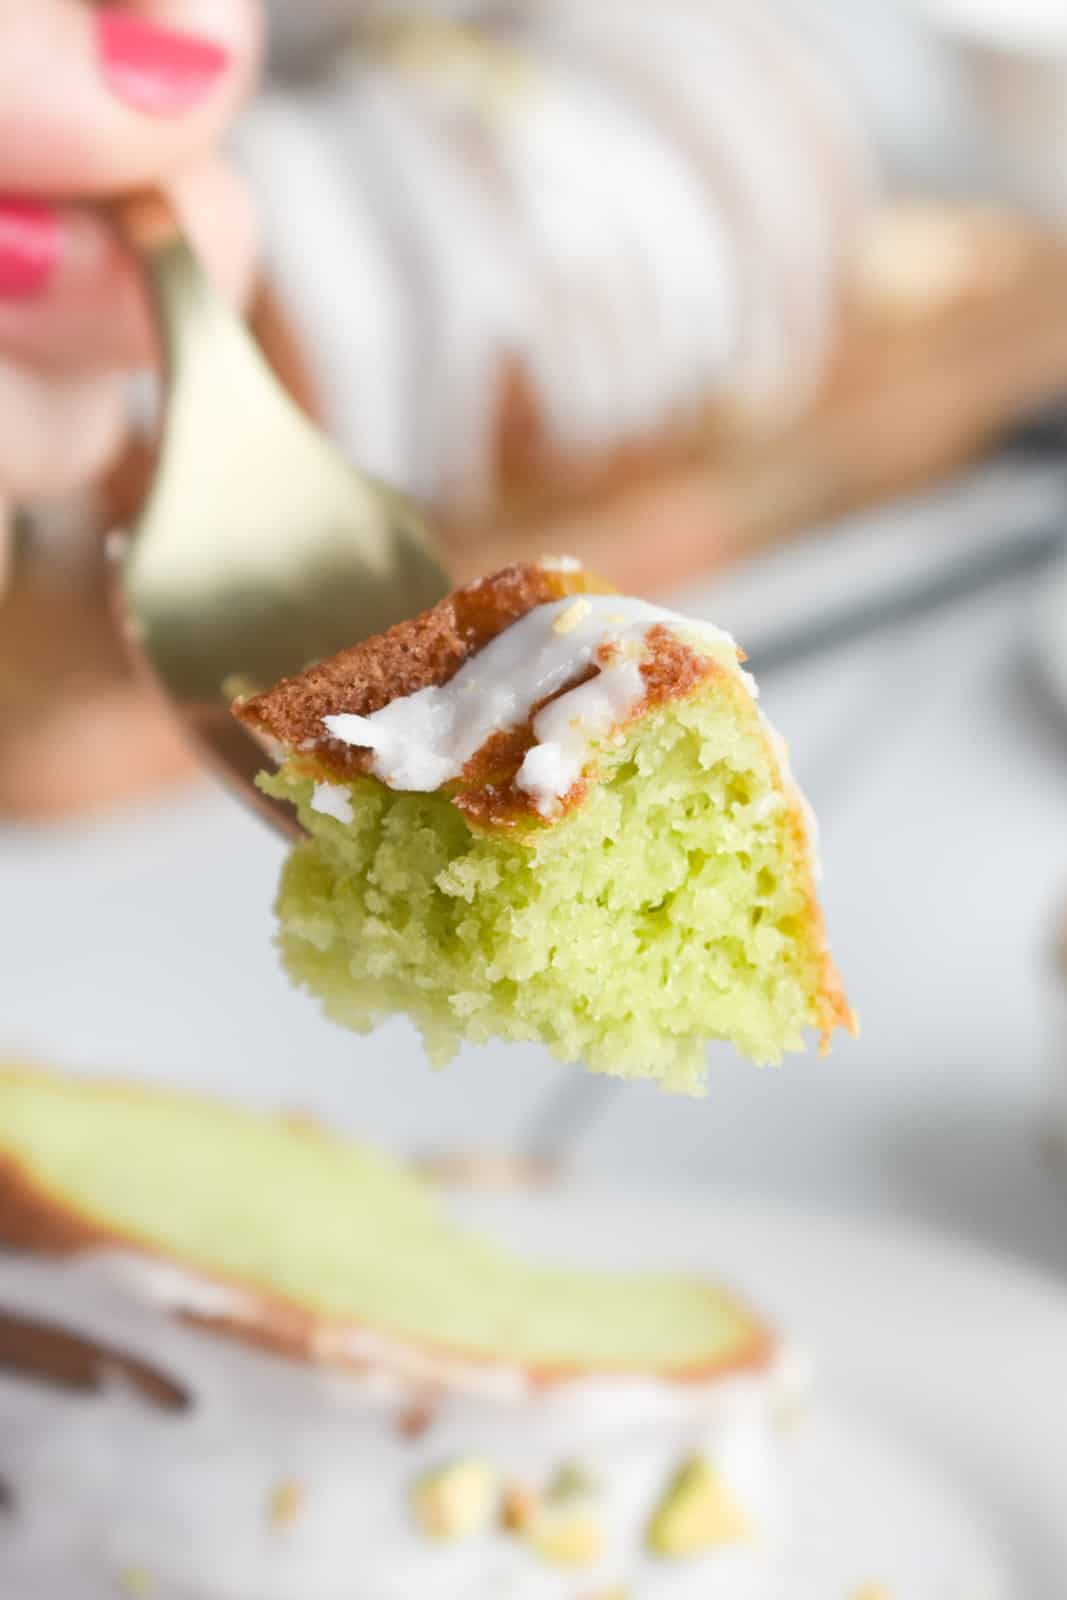 Fork holding up a bite out of the Pistachio Cake